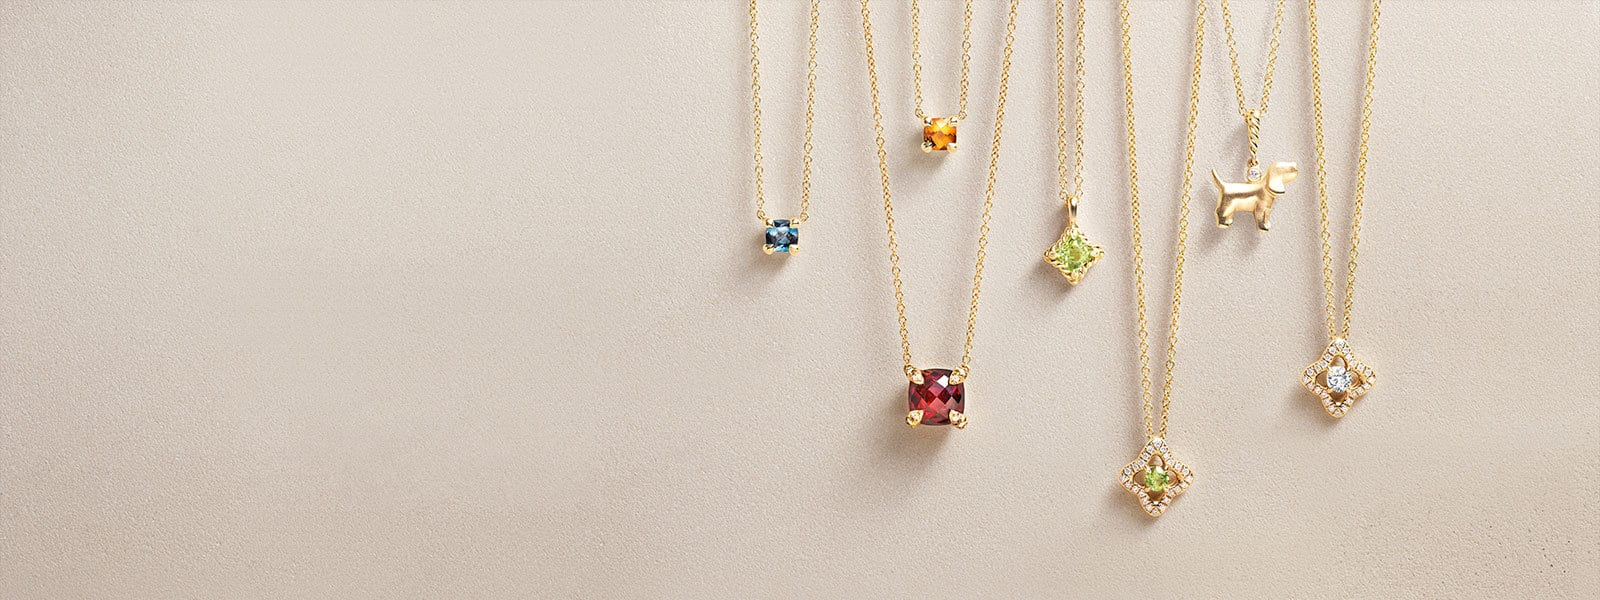 Cable Kids® Châtelaine® necklaces in 18K yellow gold with Hampton blue topaz, citrine and peridot. Cable Collectibles® charm necklace in 18K yellow gold with diamonds. Châtelaine® and Venetian Quatrefoil necklaces in 18K yellow gold with garnet, diamonds and peridot.